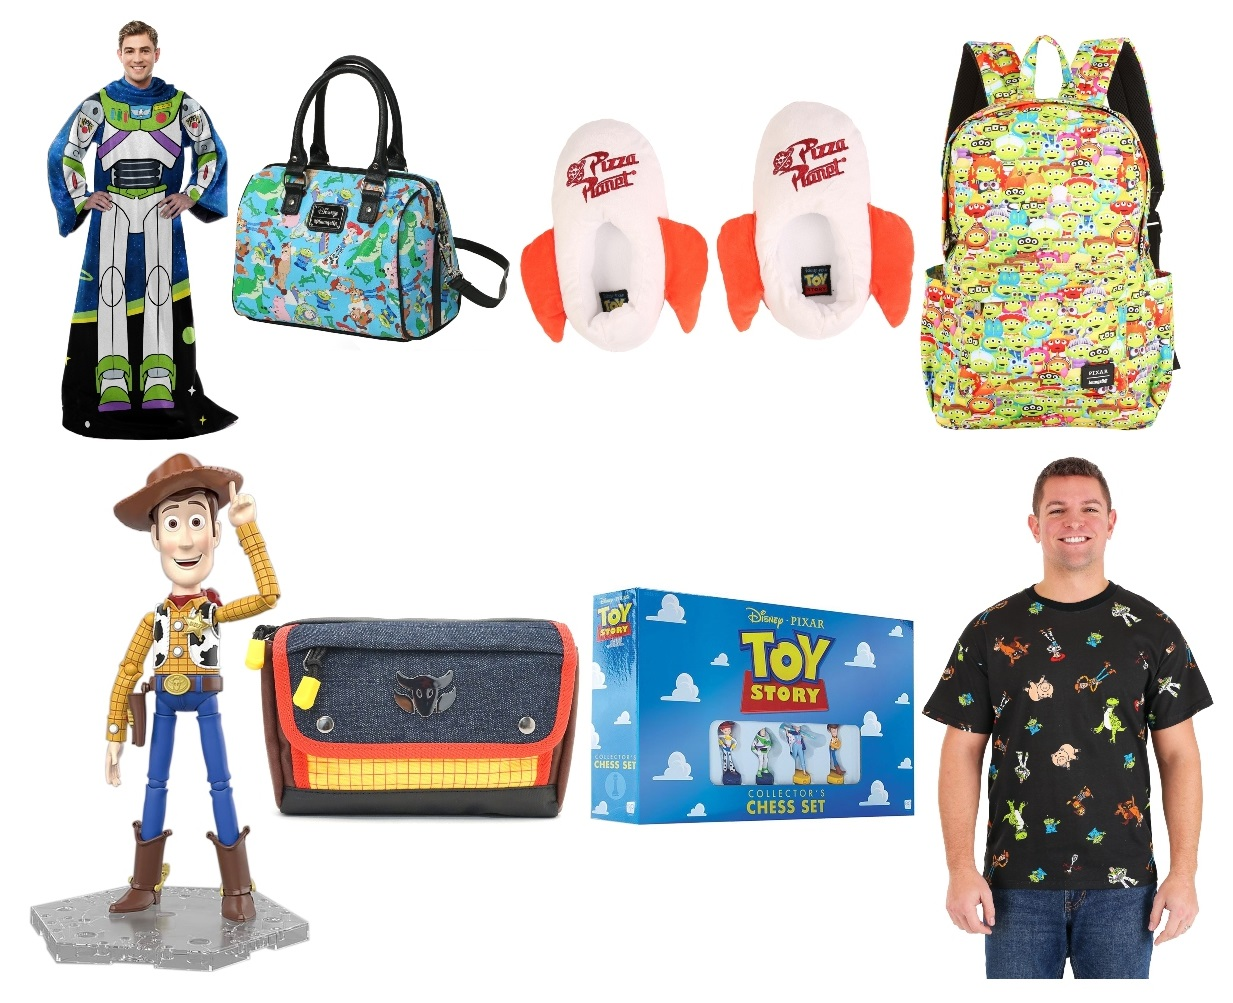 Adult Toy Story Gifts